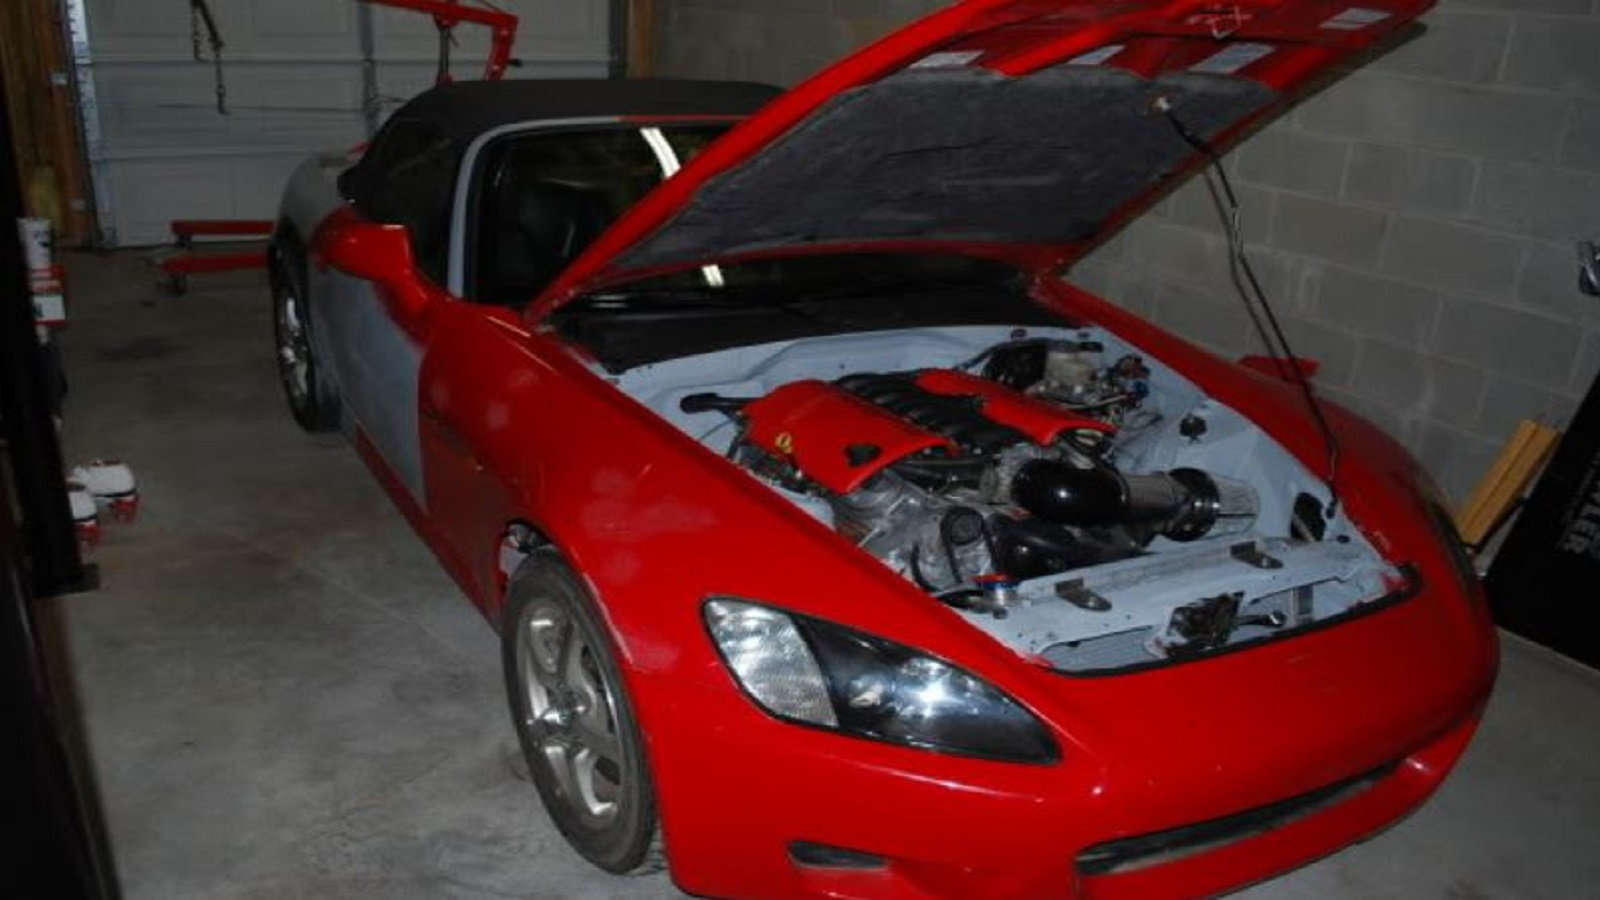 The LS1 Swap